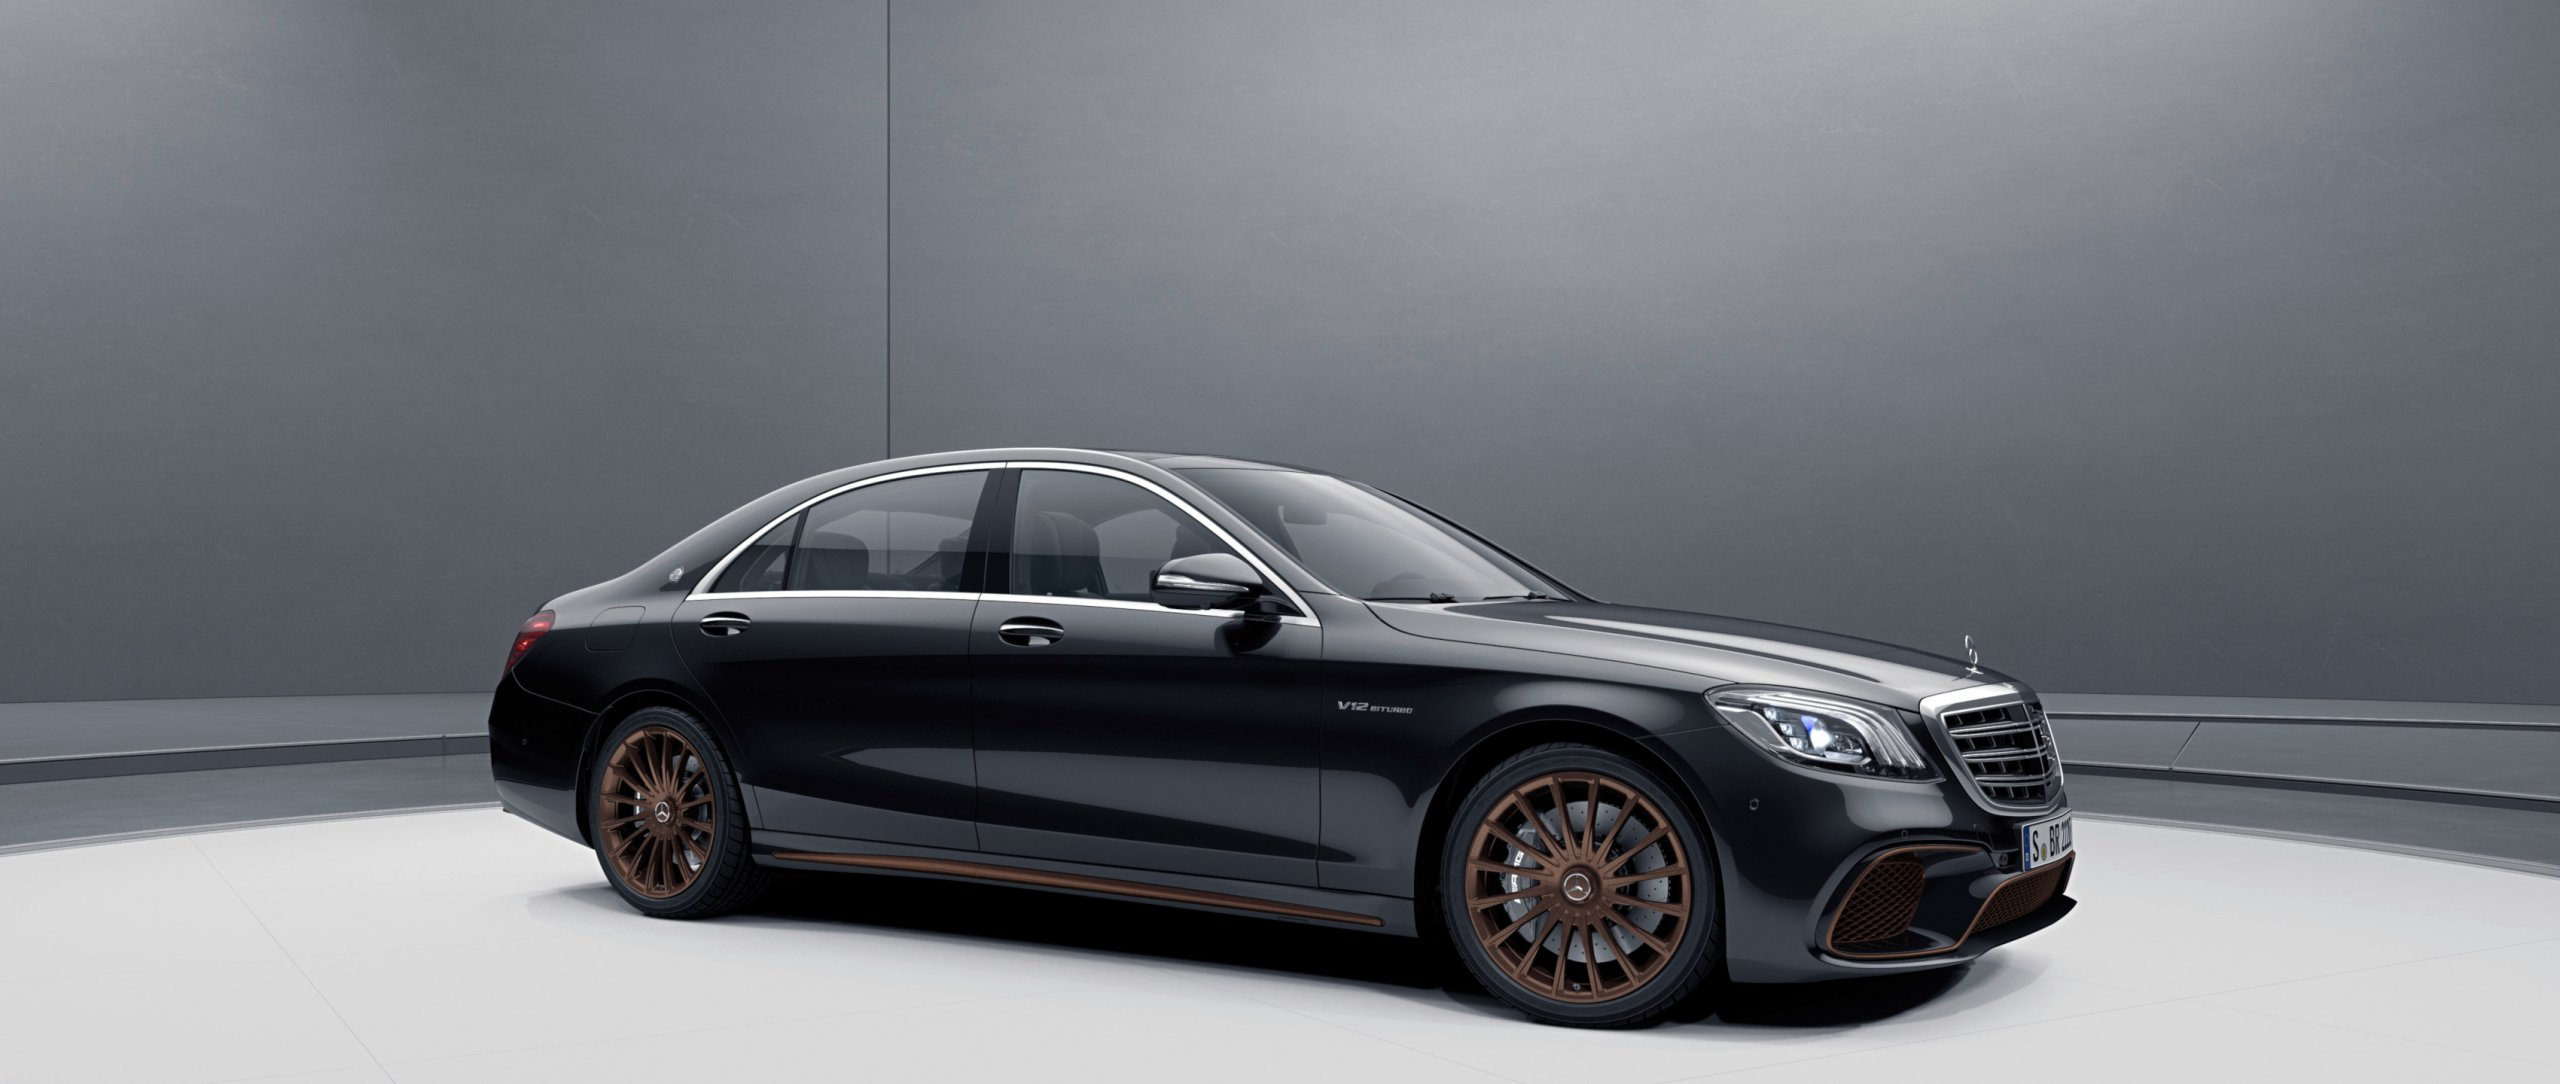 The Mercedes-AMG S 65 Final Edition (V 222) in obsidian black and with 20-inch multi-spoke wheels.